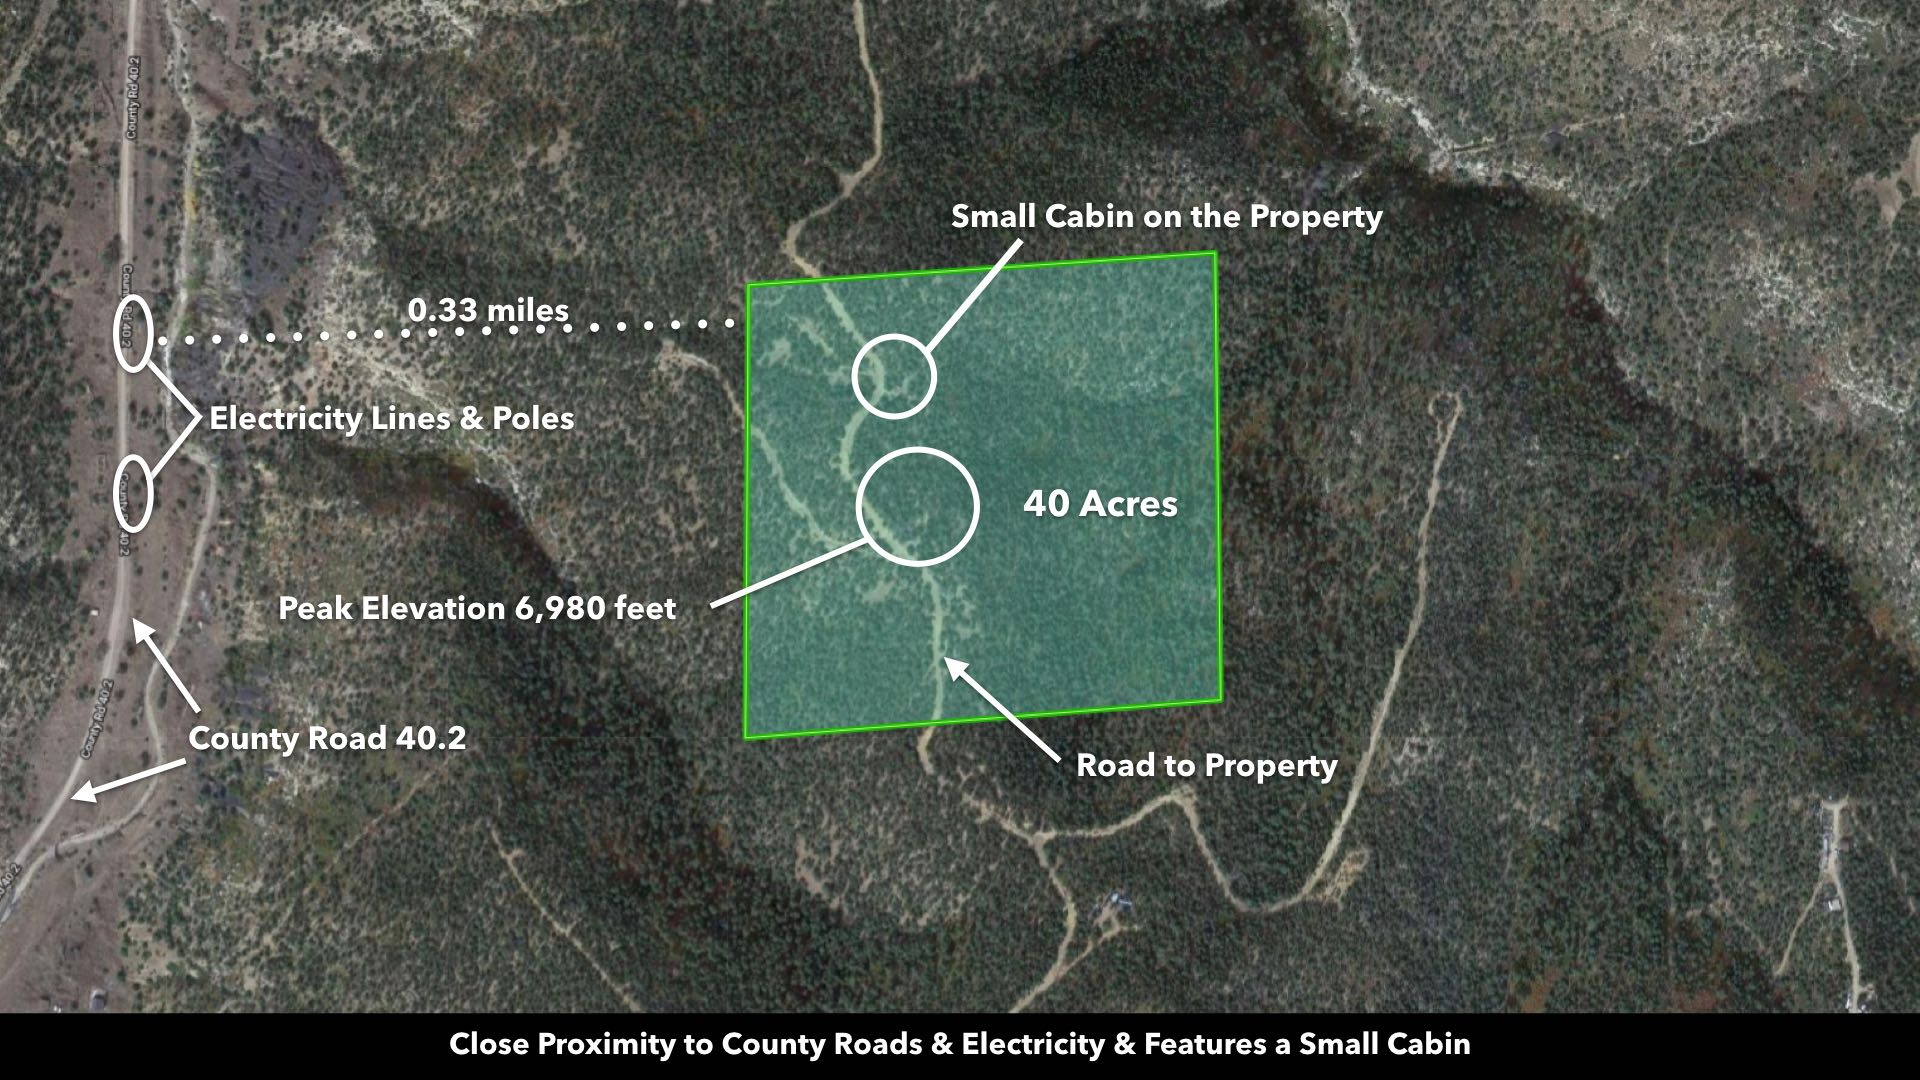 Mountain Land For Sale in Colorado near Trinidad, Walsenburg ... on las animas colorado, las animas high school, rocky mountain national park road map, co road map, pueblo west road map, sterling road map, las animas county courthouse, simpson road map, vail road map, central city road map, fort collins road map, las animas county plat map, las animas county records, longmont road map, roosevelt national forest road map, estes park road map, lafayette road map, broomfield road map, mount evans road map, quay county nm satlite map,